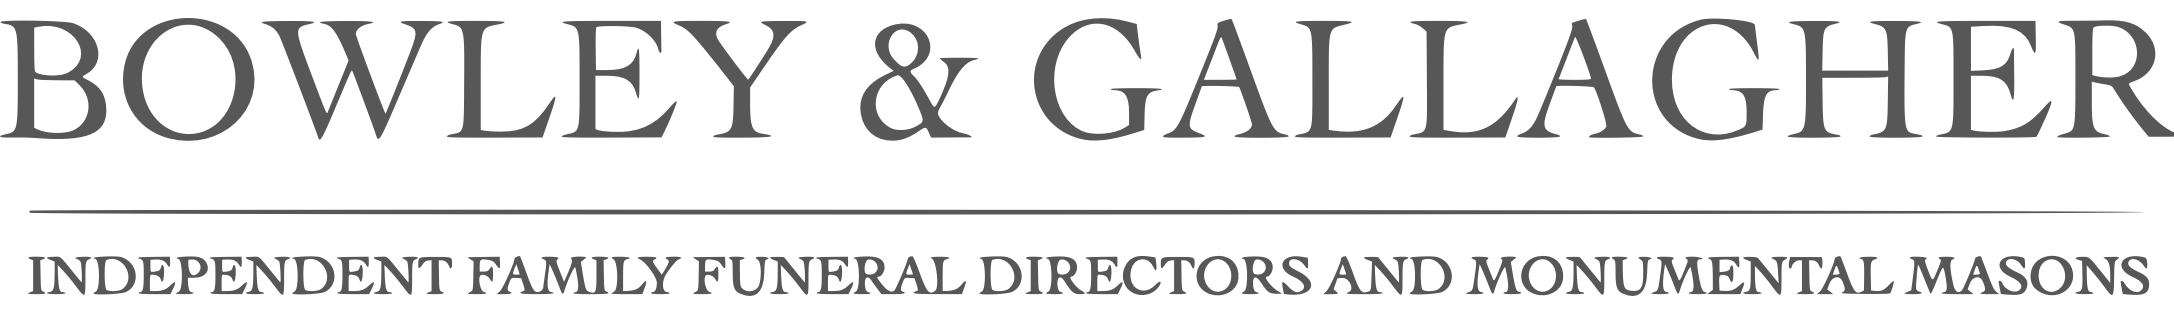 Bowley & Gallagher Logo